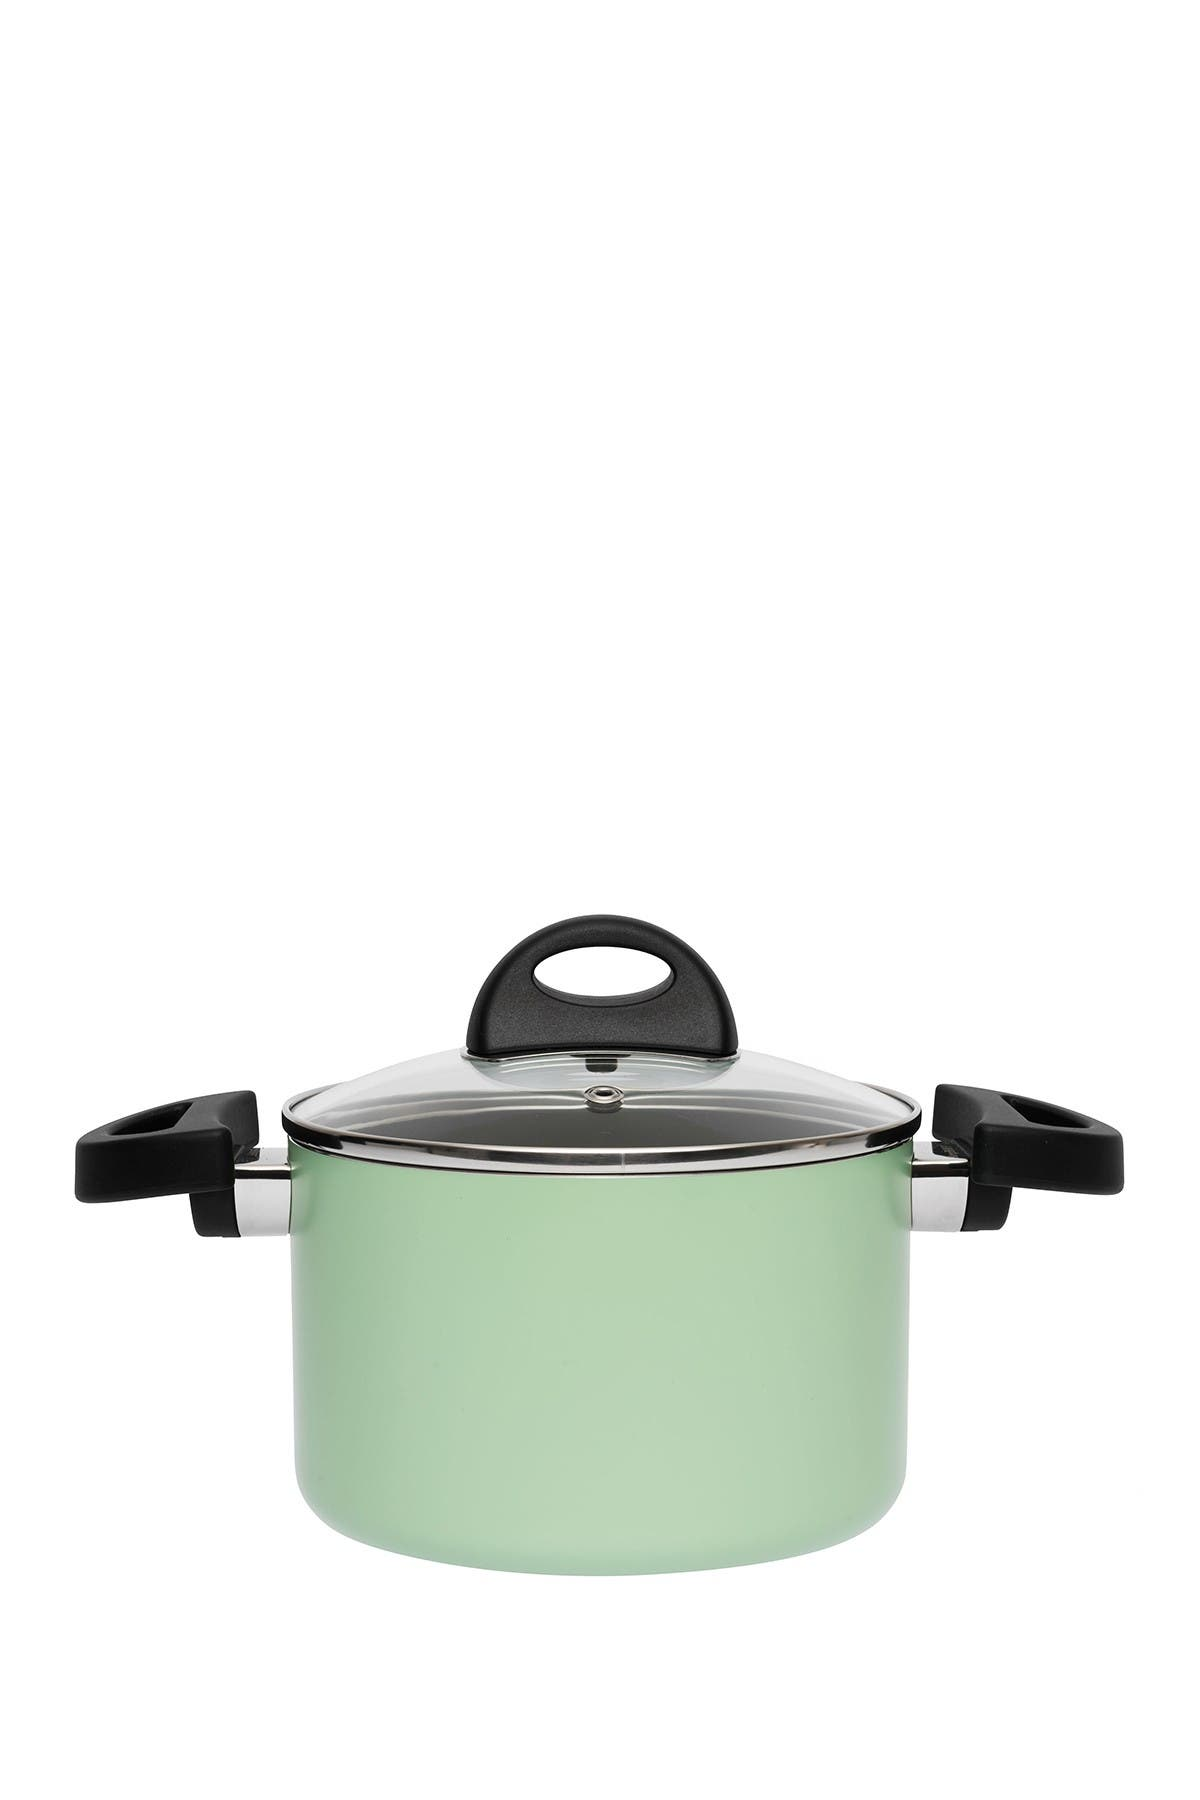 Image of BergHOFF Green 2.1 Quart Covered Casserole